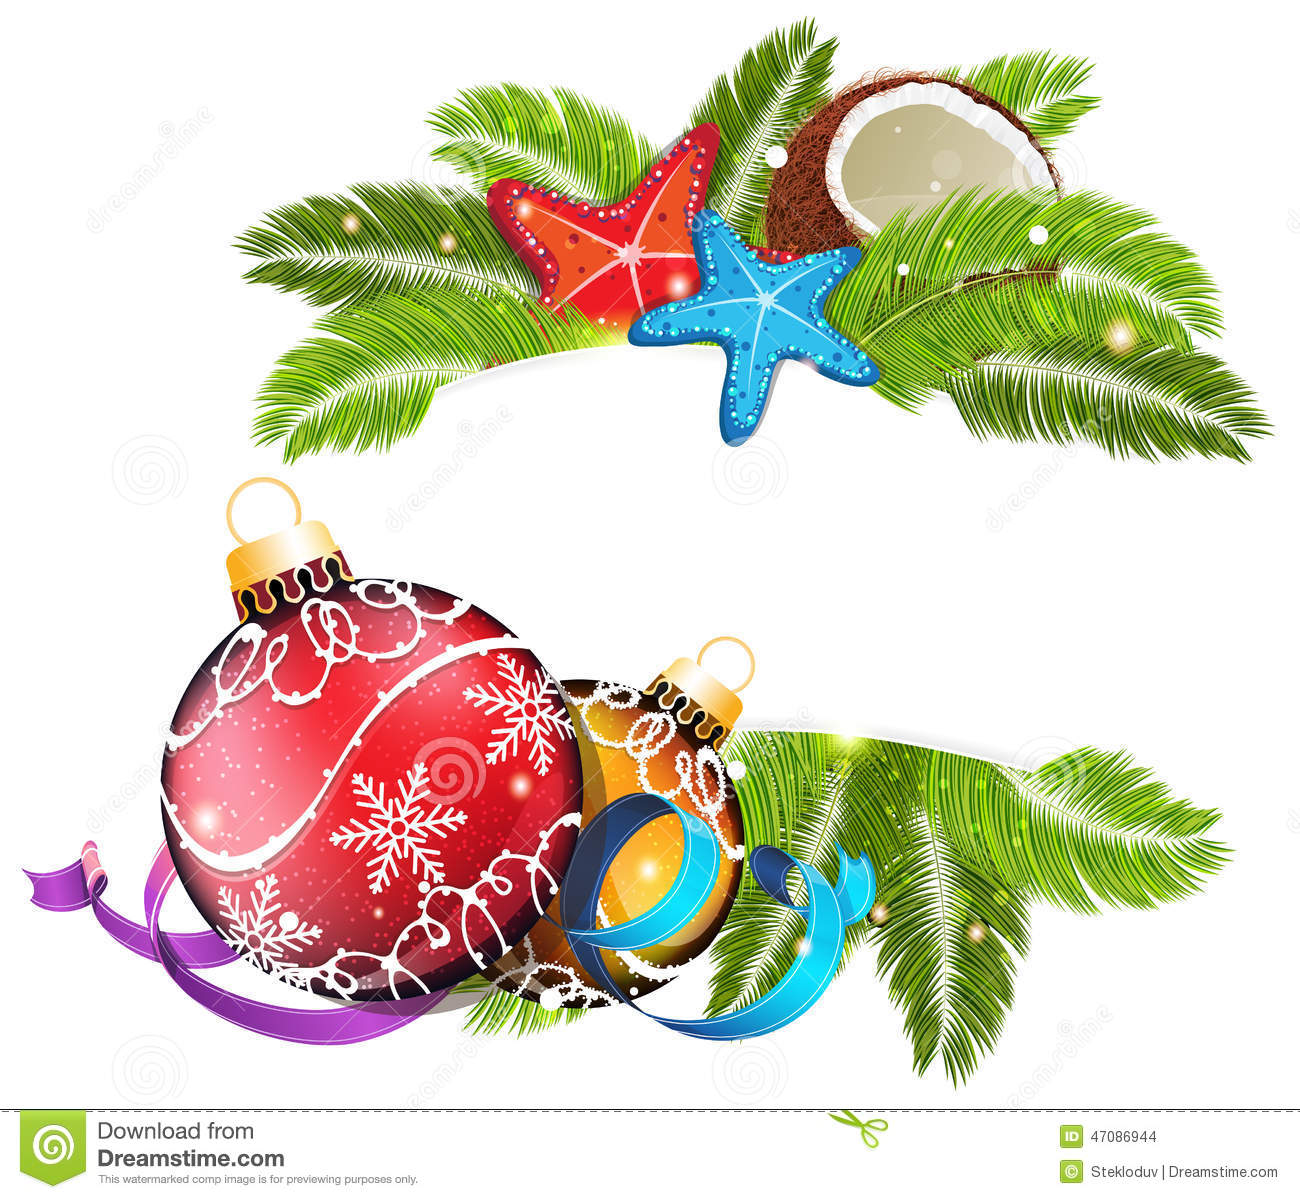 Tropical Christmas stock vector. Illustration of background.